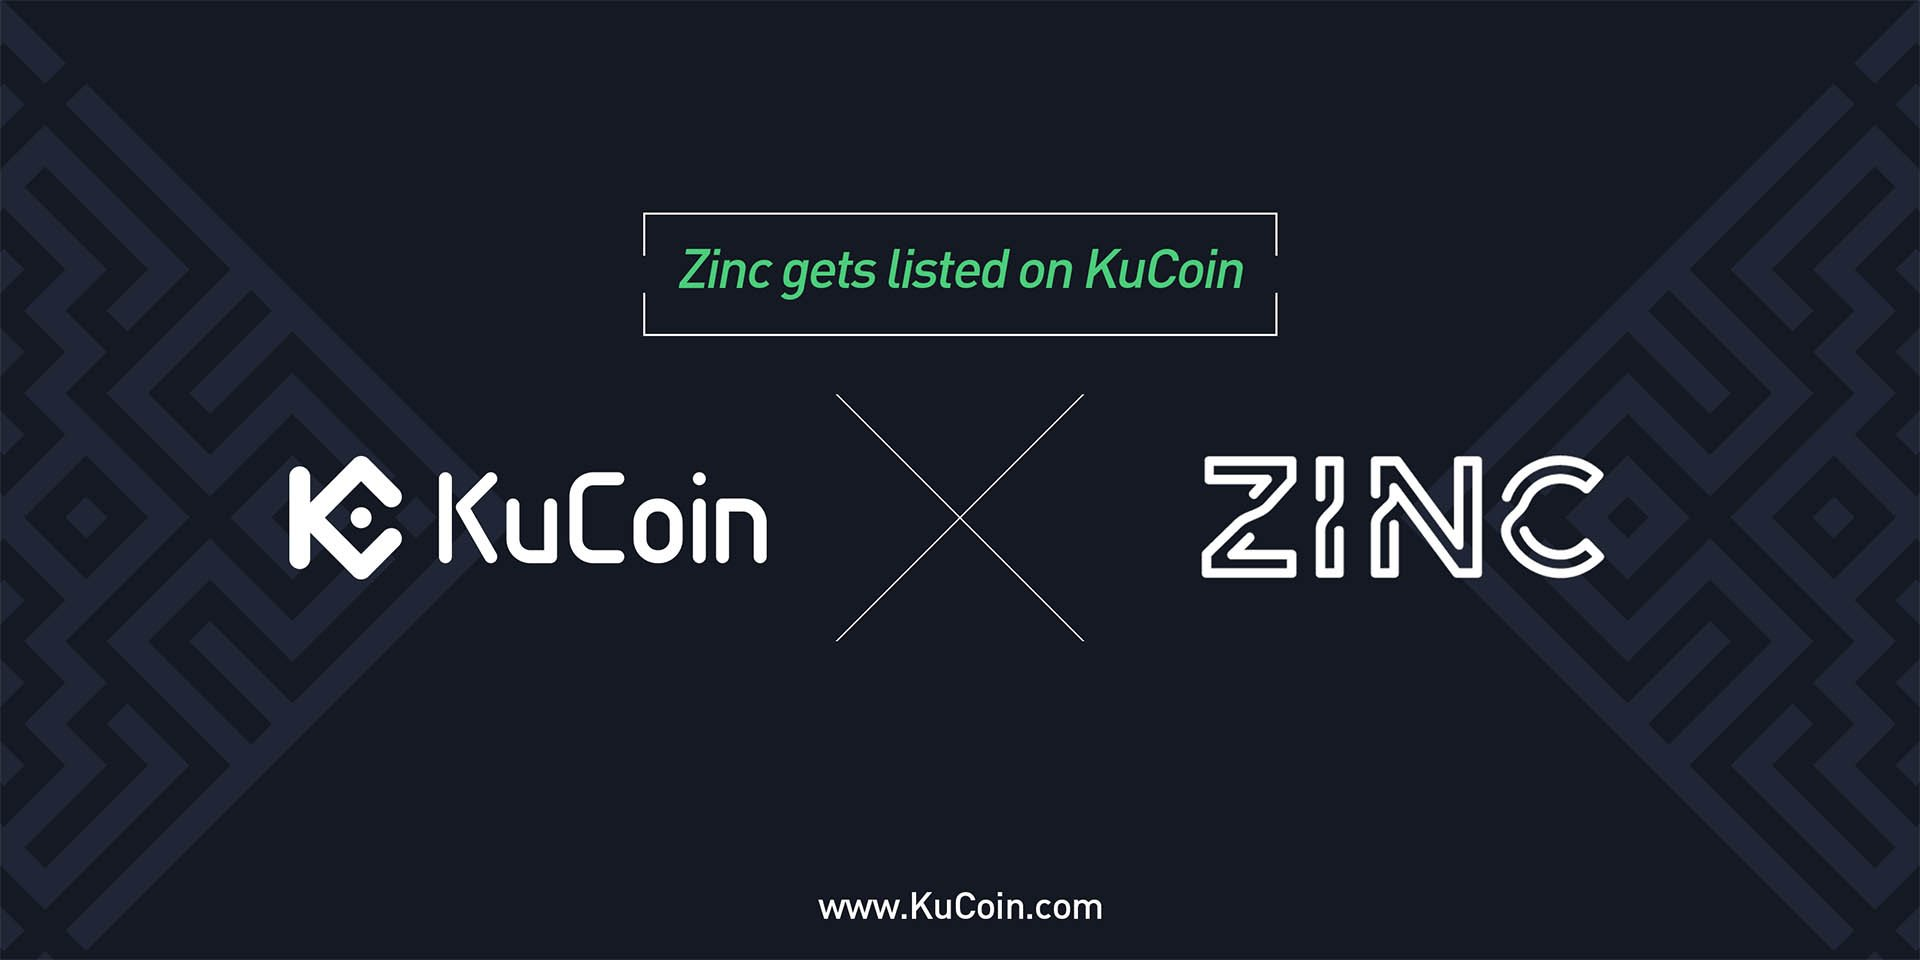 Zinc (ZINC) Gets Listed on KuCoin!